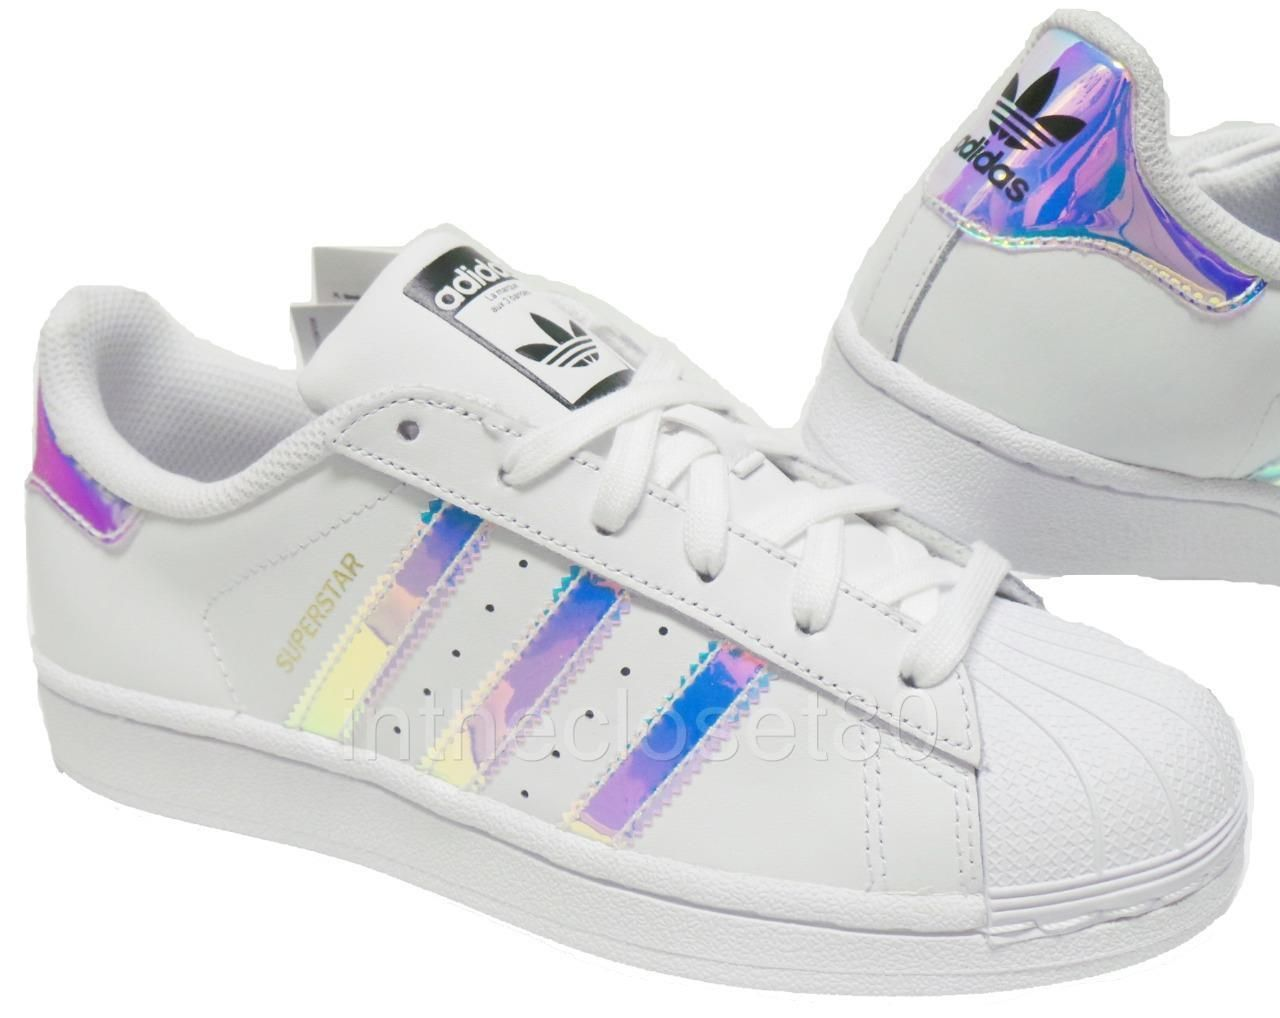 Superstar Details Adidas Gs White Silver Juniors About Iridescent qMVpUSz